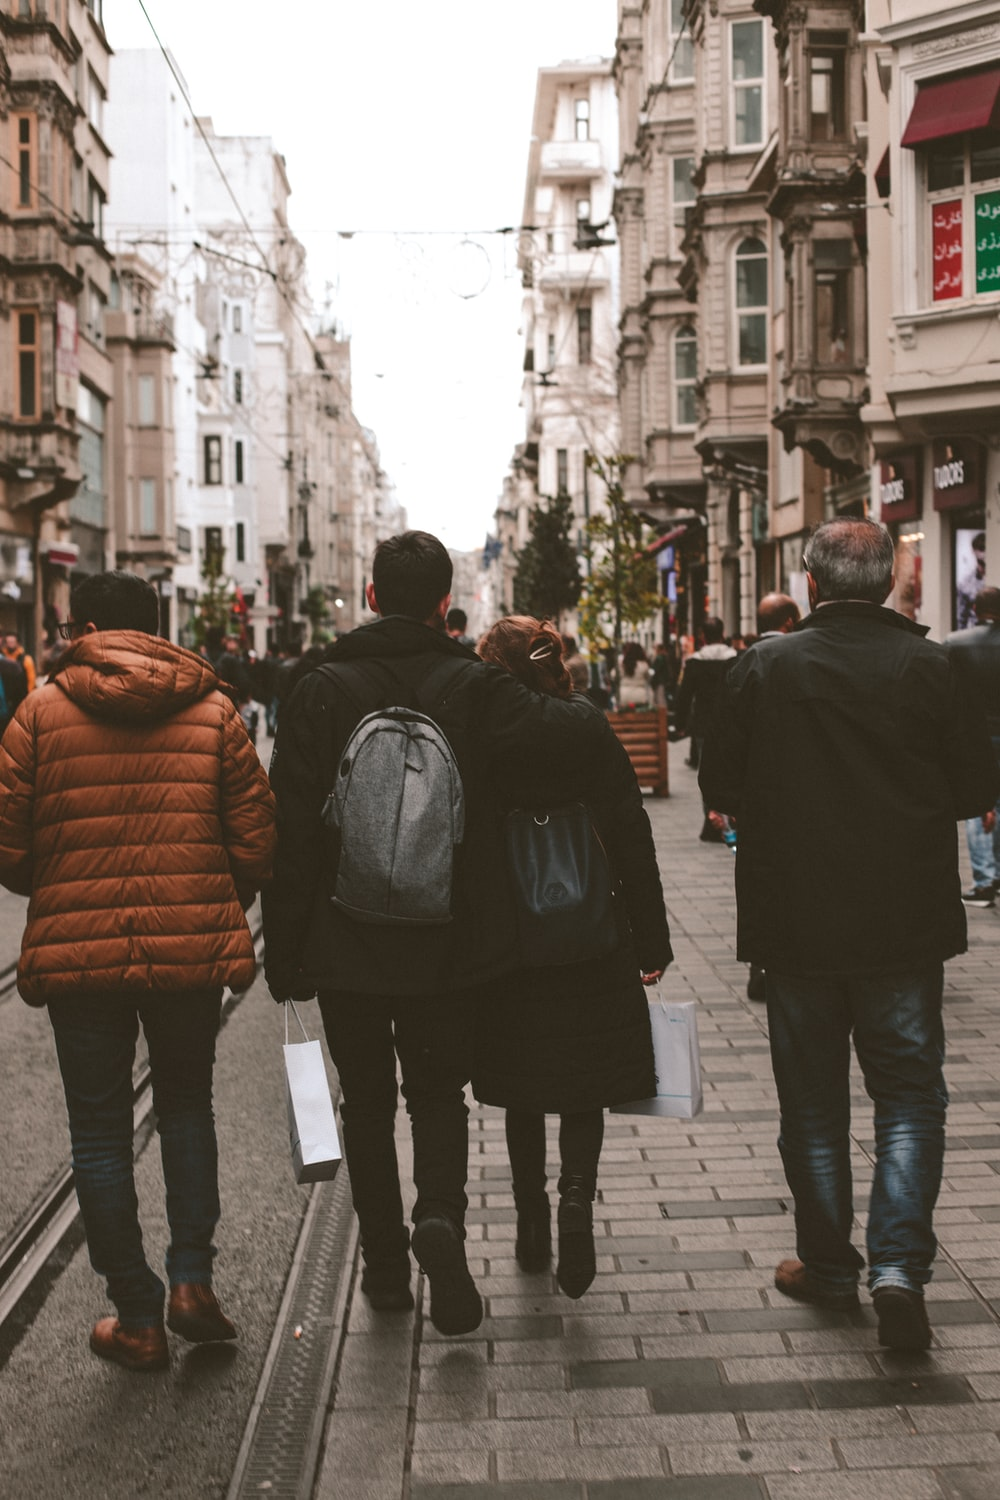 four persons walking on street during daytime